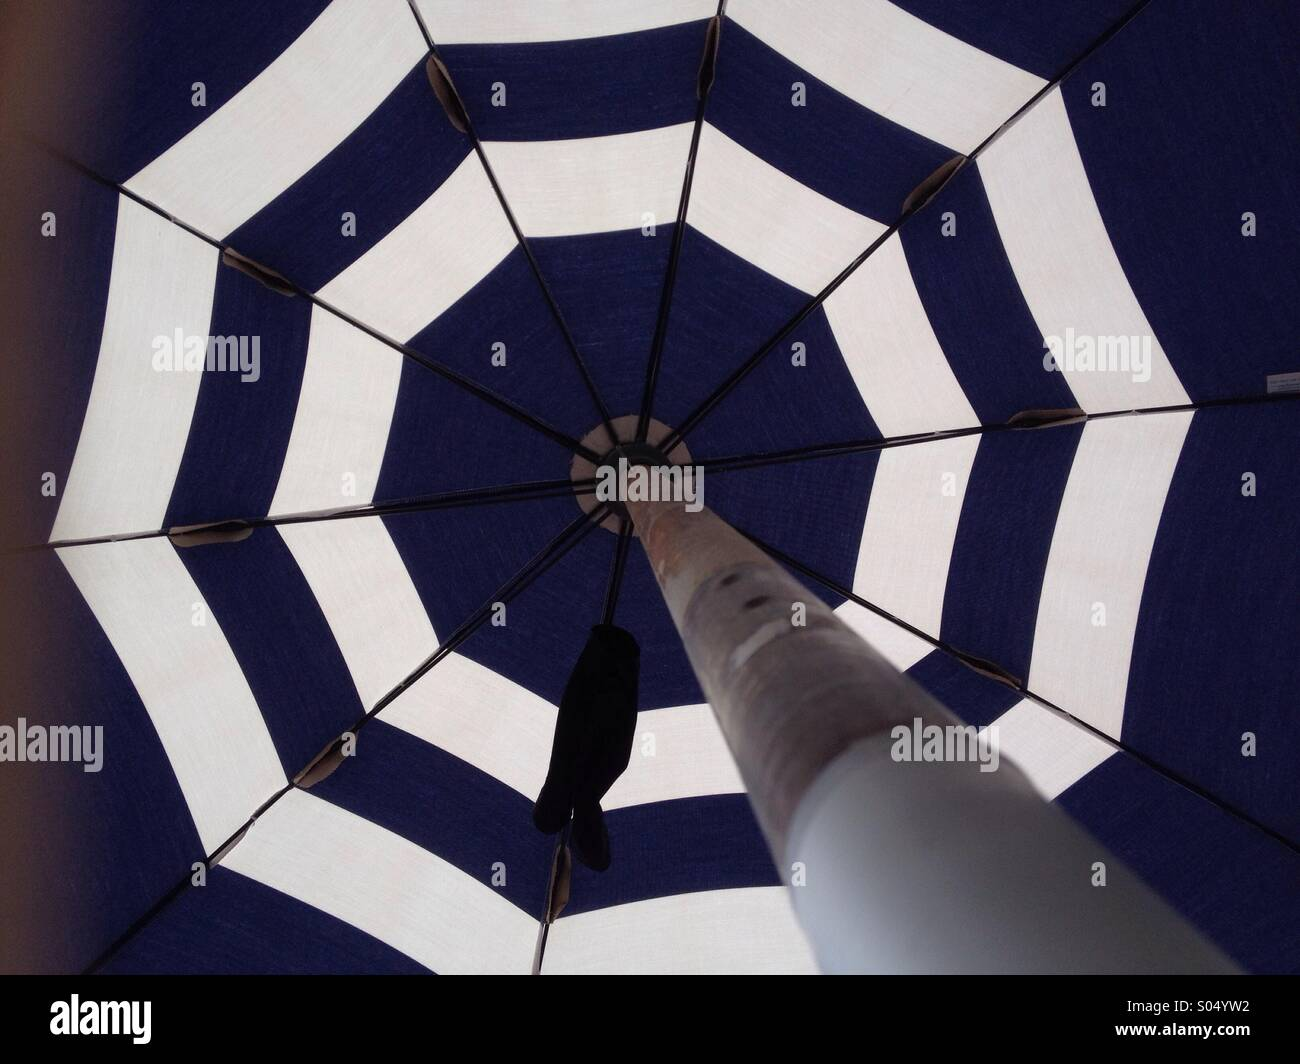 Parasol seen from below - Stock Image